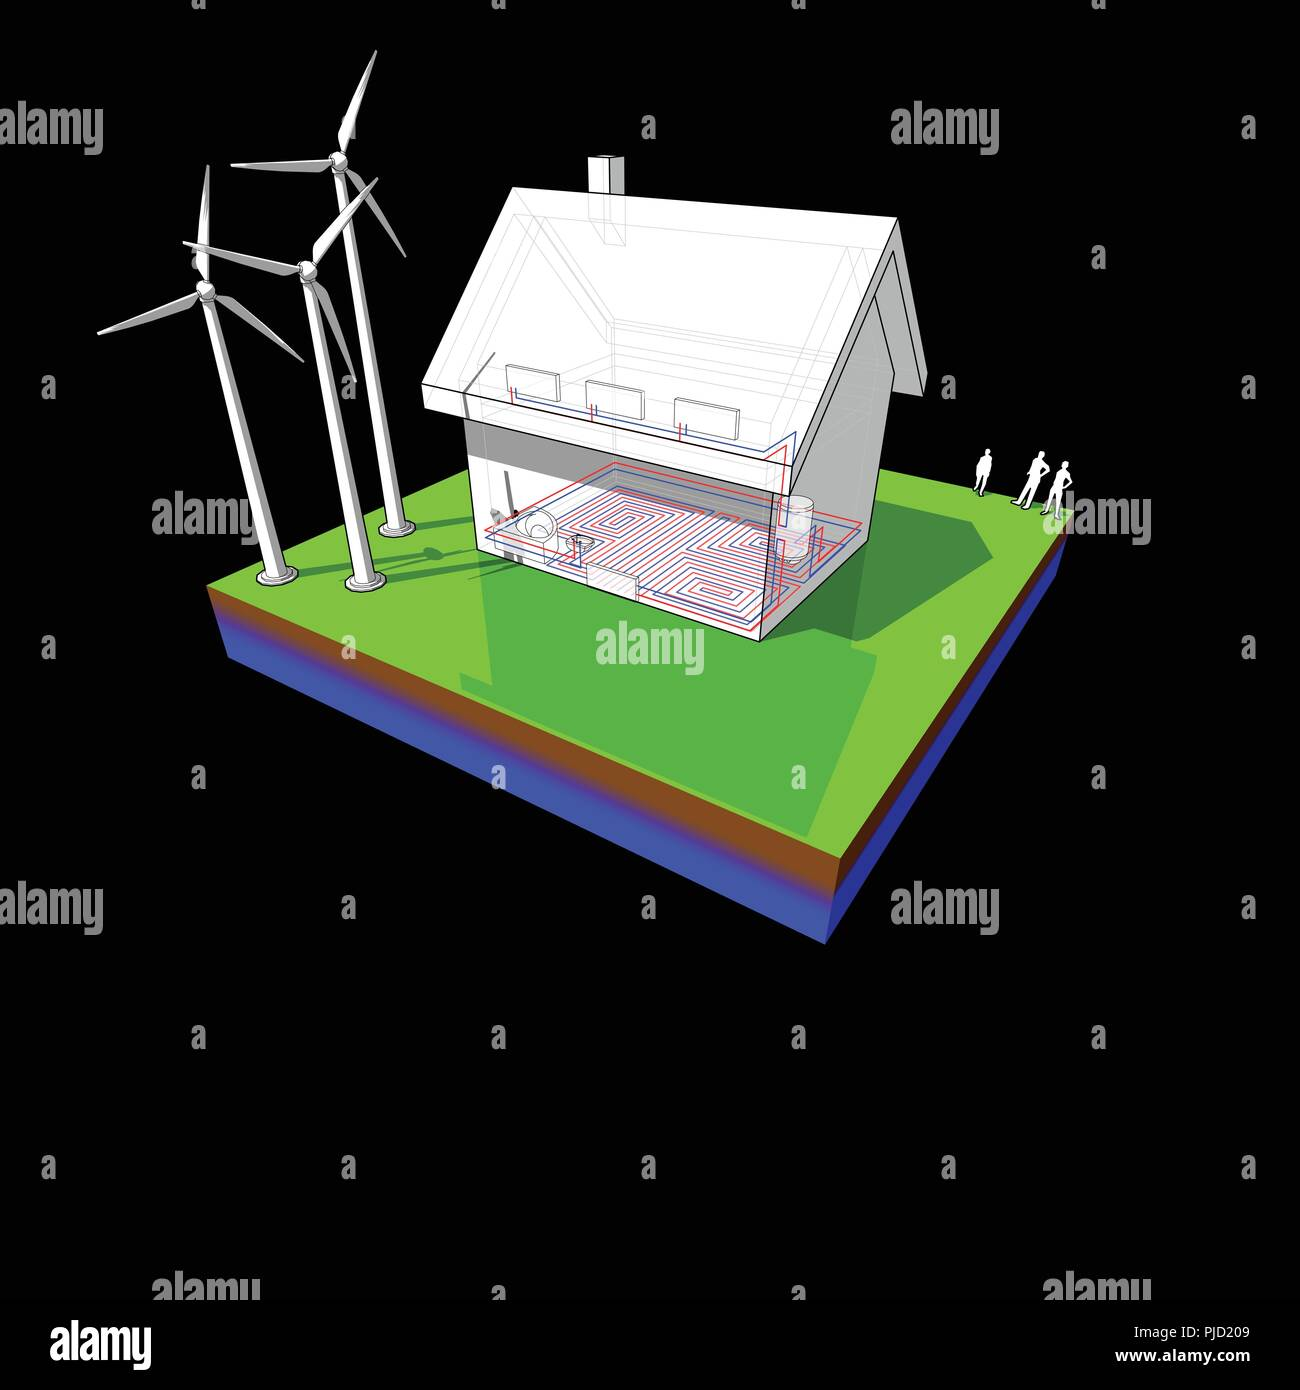 Diagram Of A Detached House With Floor Heating On The Ground Wind Turbines And Radiators First As Source For Electric Energy